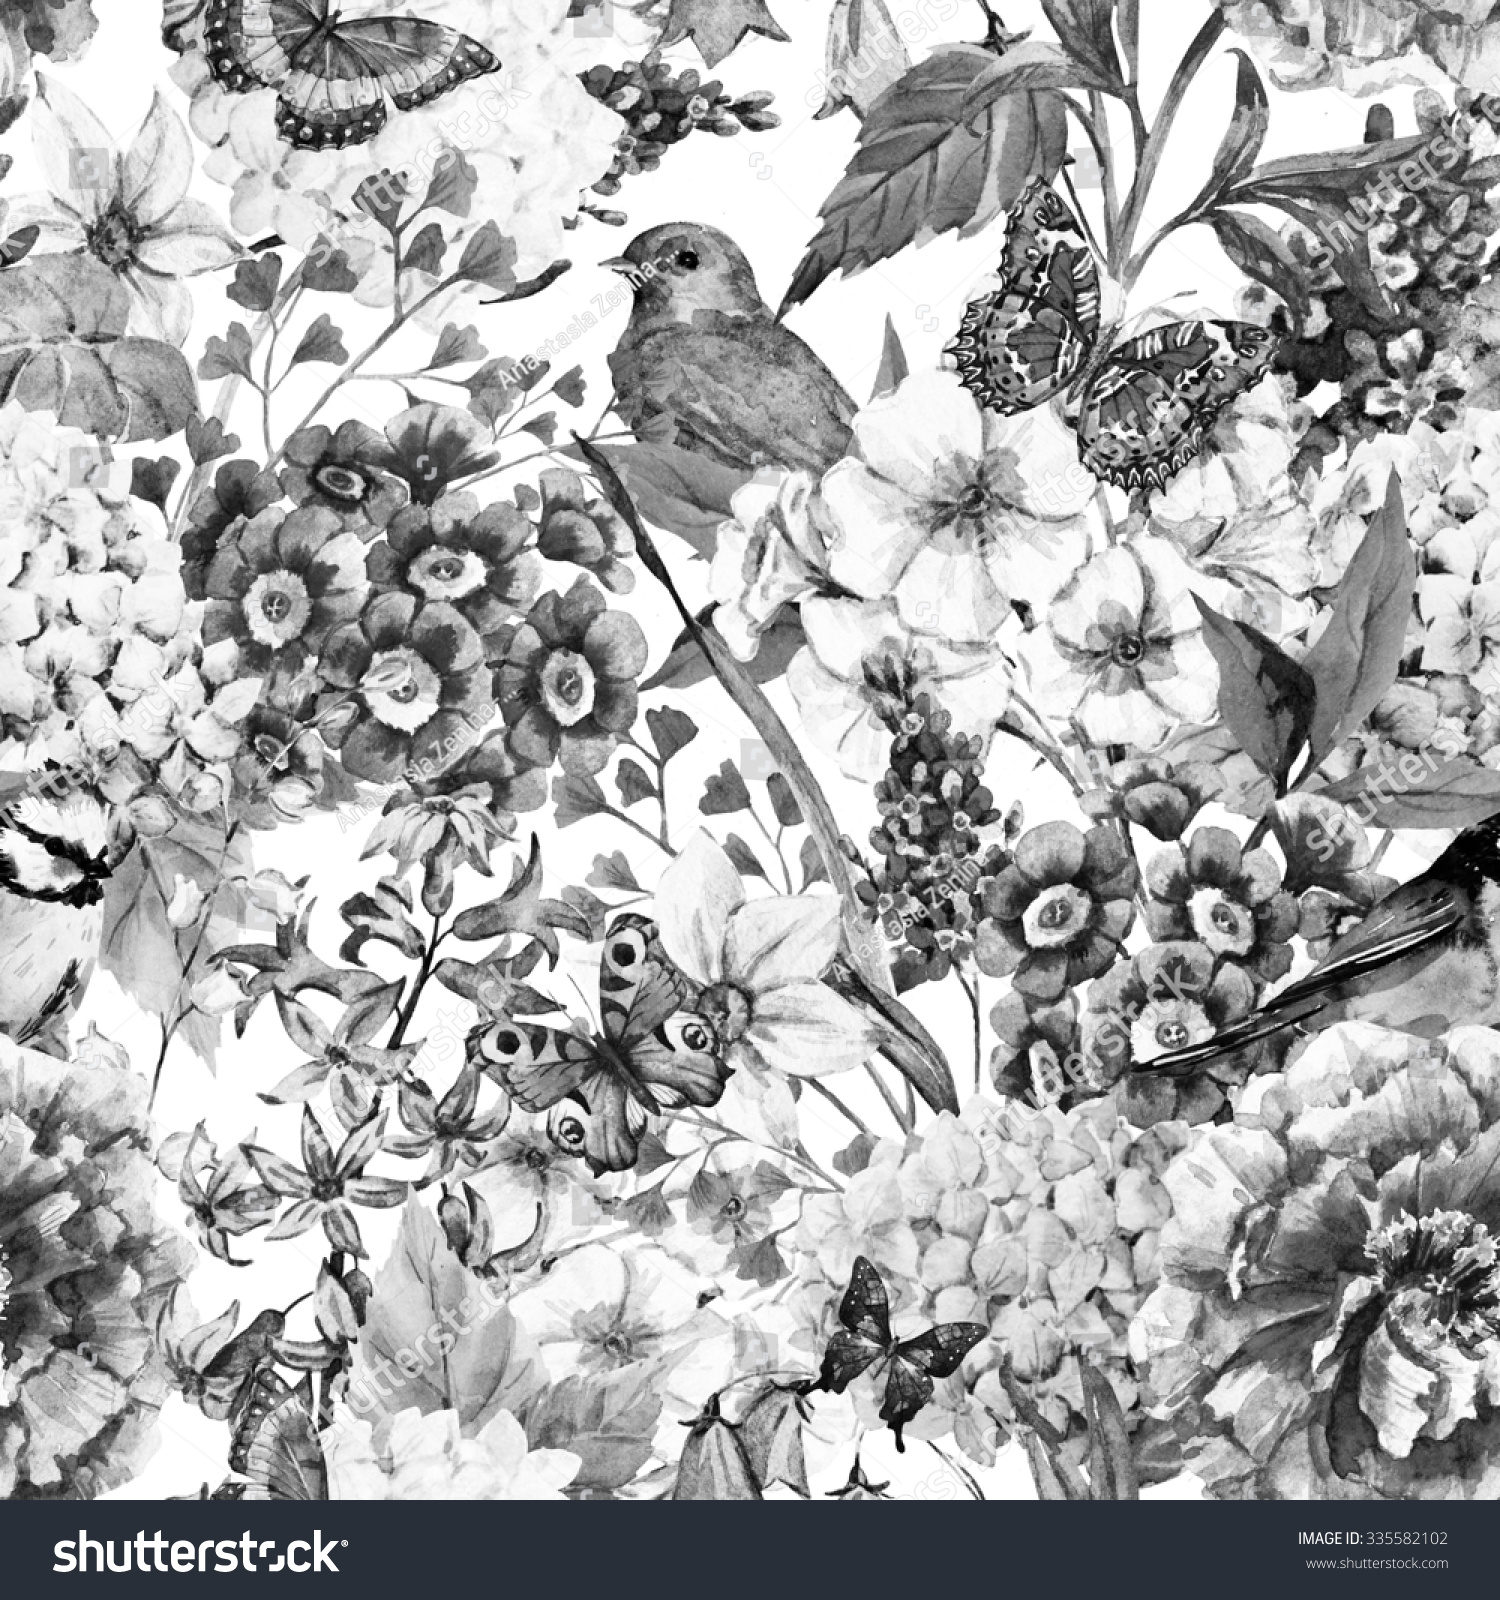 watercolor floral vintage pattern flowers birds stock illustration